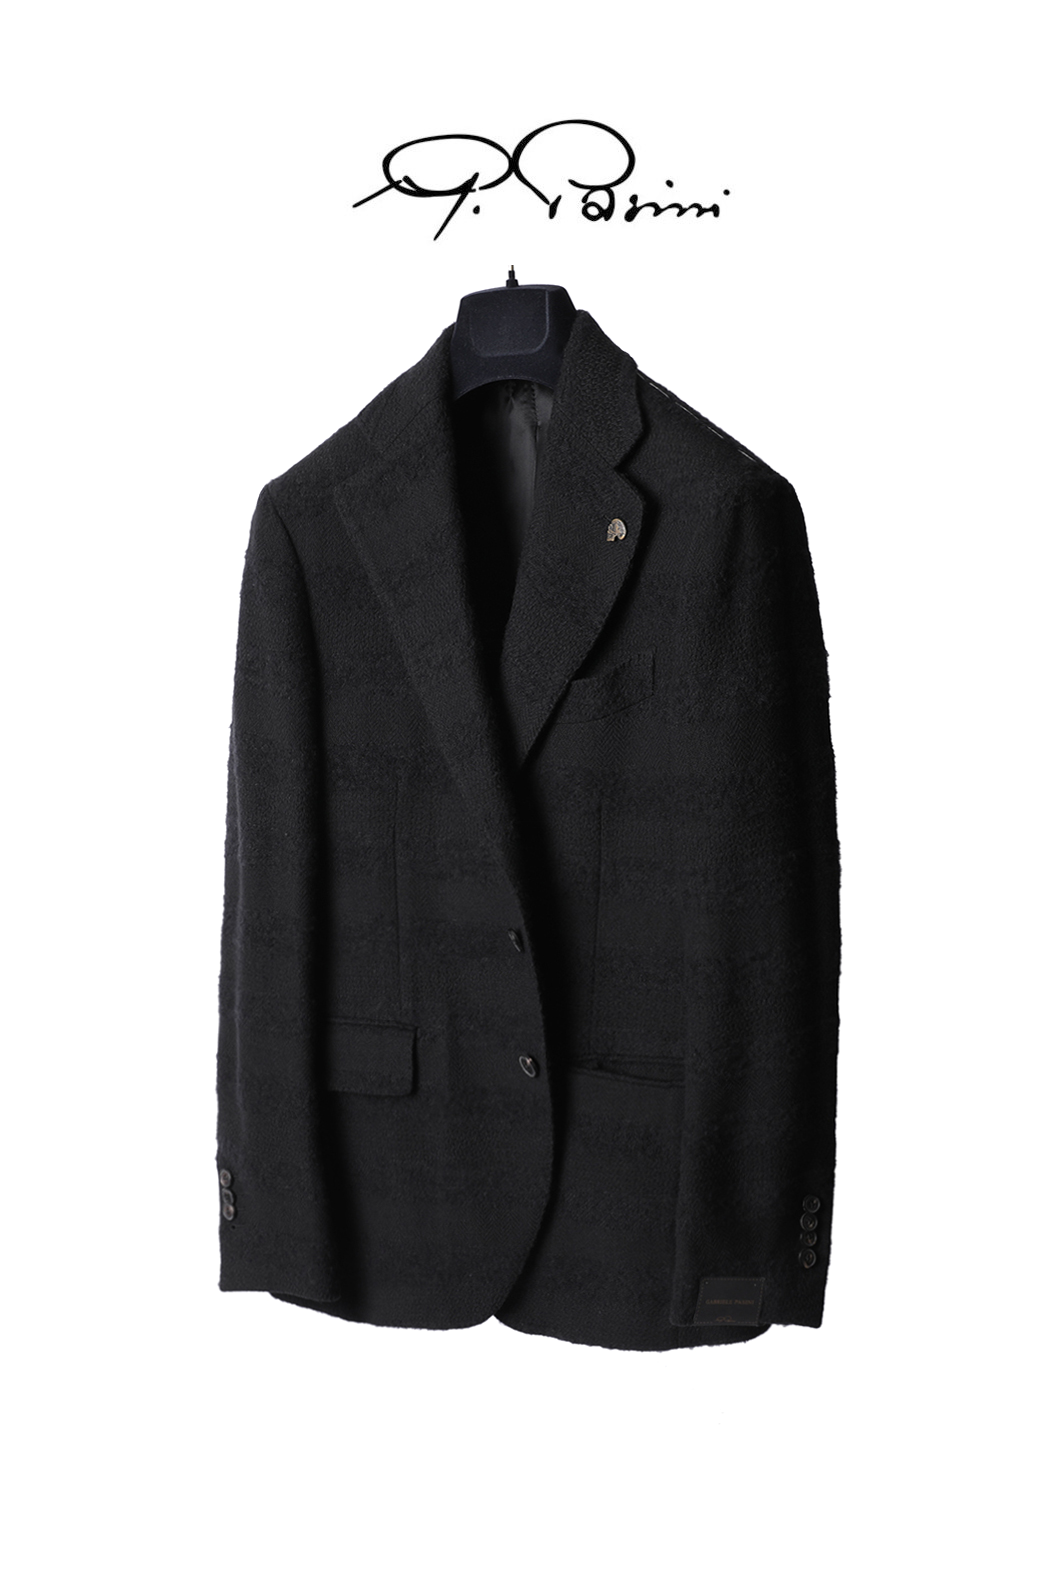 PASINI Single Boucle Breasted Jacket-Black